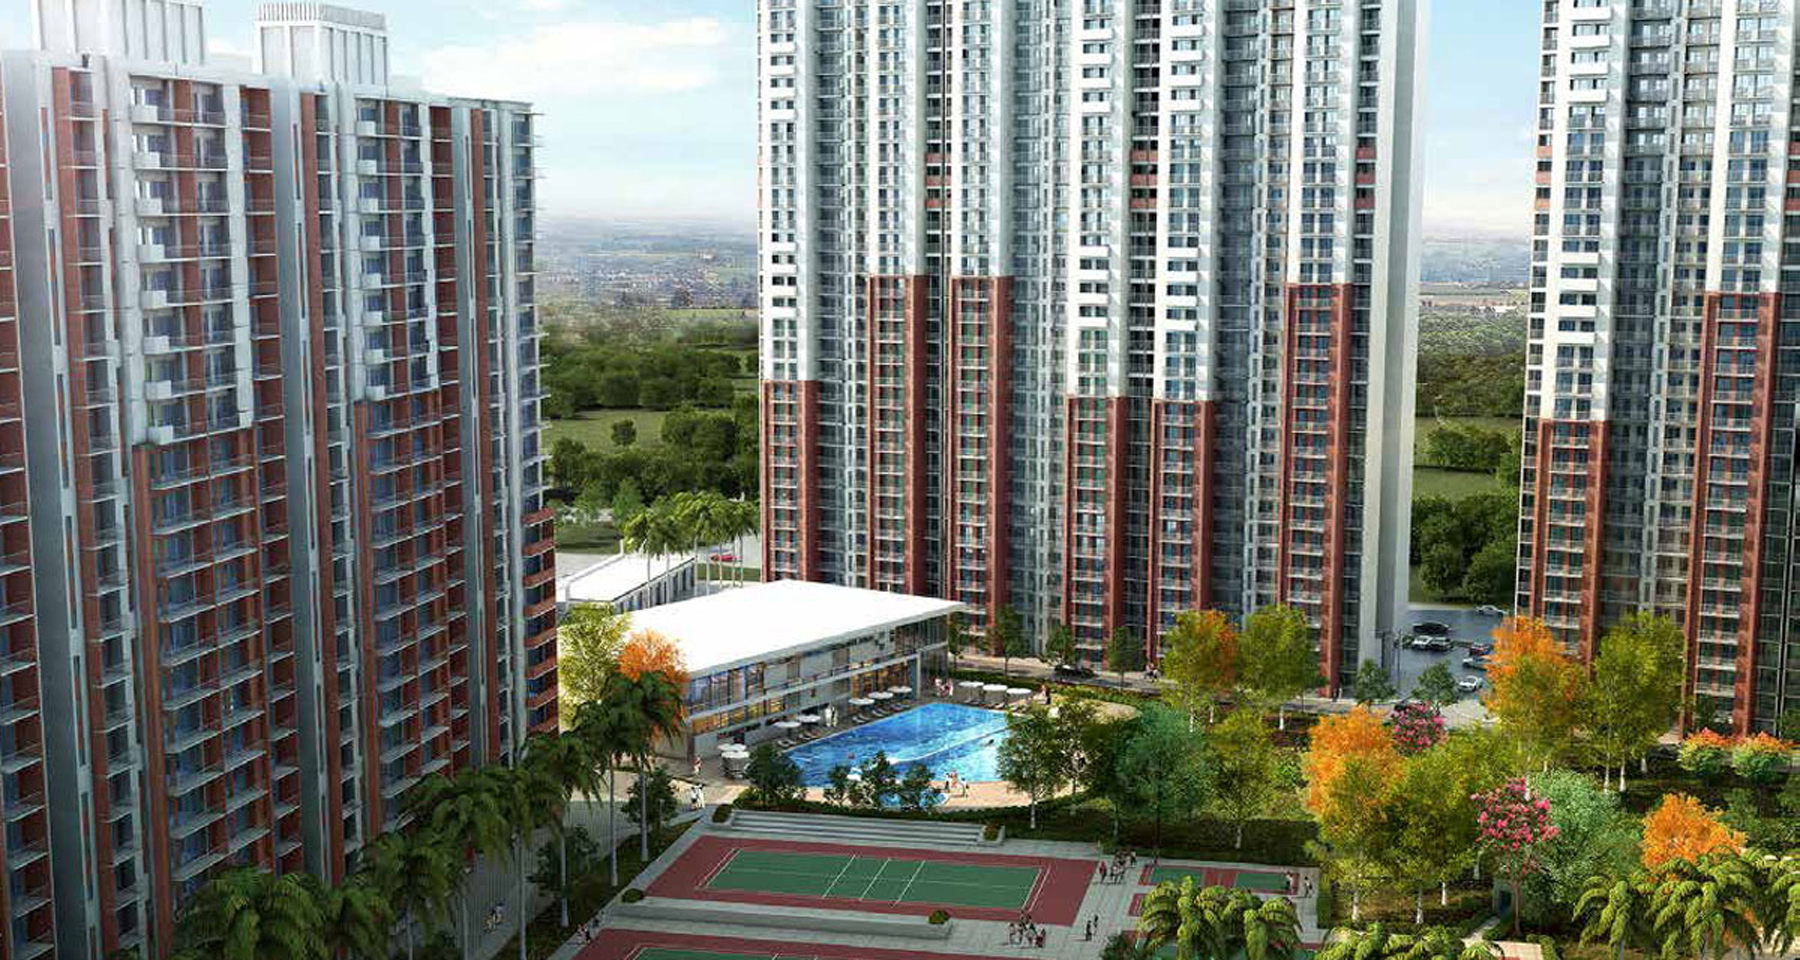 Tata Value Homes Eureka Park residential property, Noida